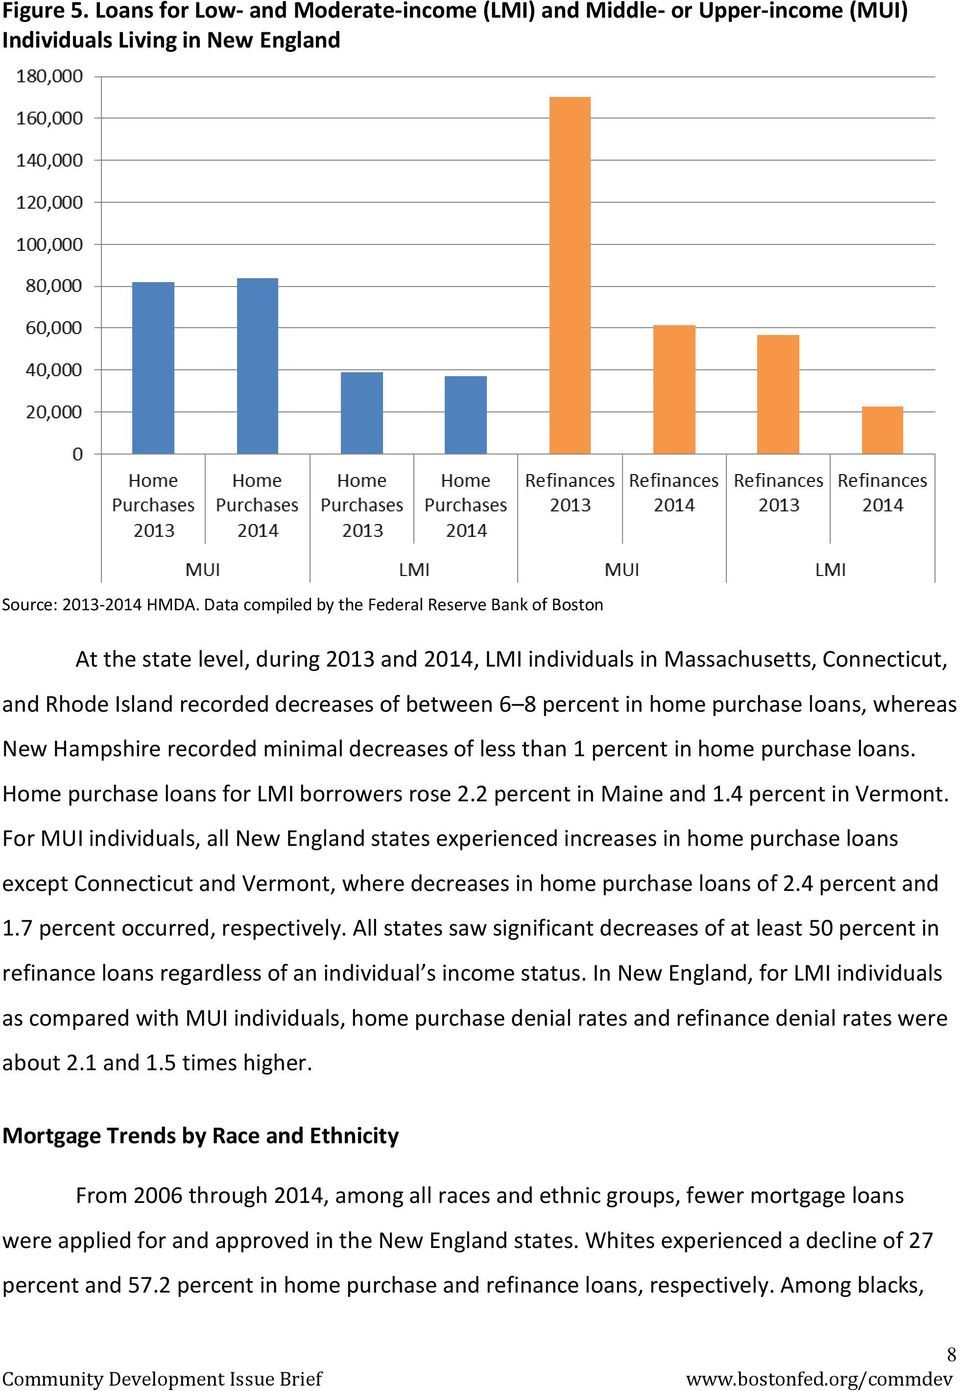 in home purchase loans, whereas New Hampshire recorded minimal decreases of less than 1 percent in home purchase loans. Home purchase loans for LMI borrowers rose 2.2 percent in Maine and 1.